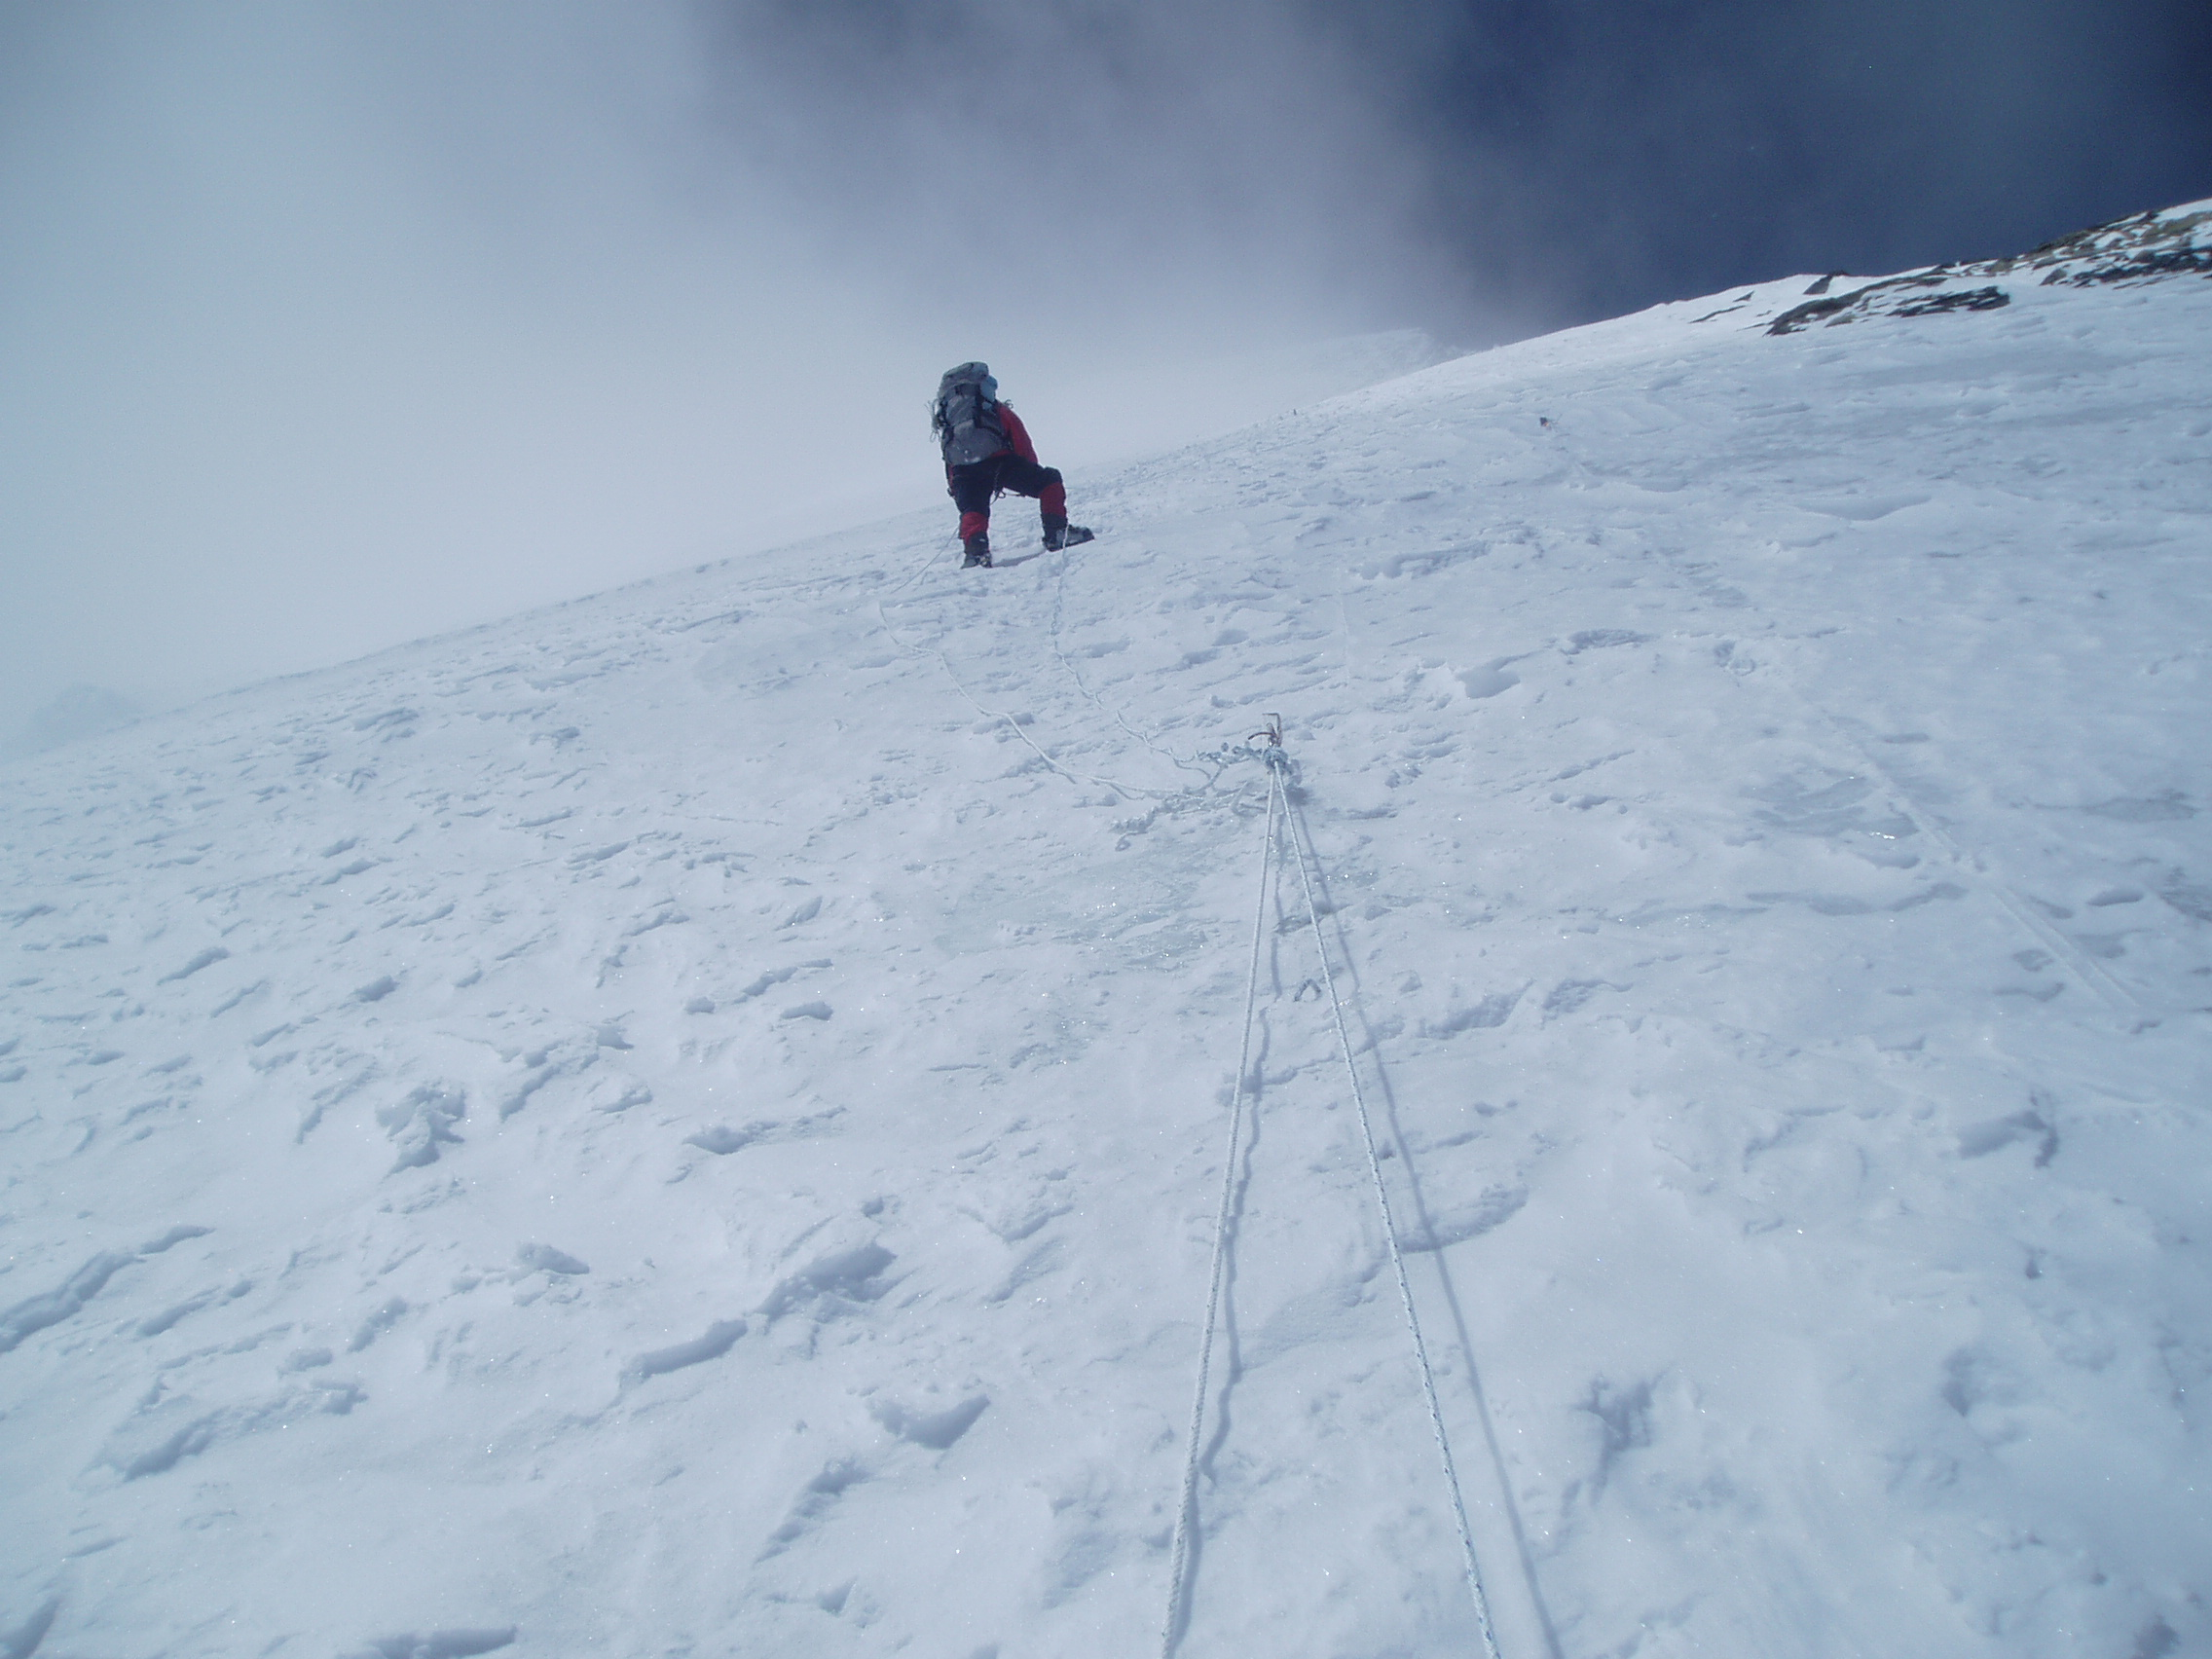 Climber making their way to higher camps on Mt Dhaulagiri